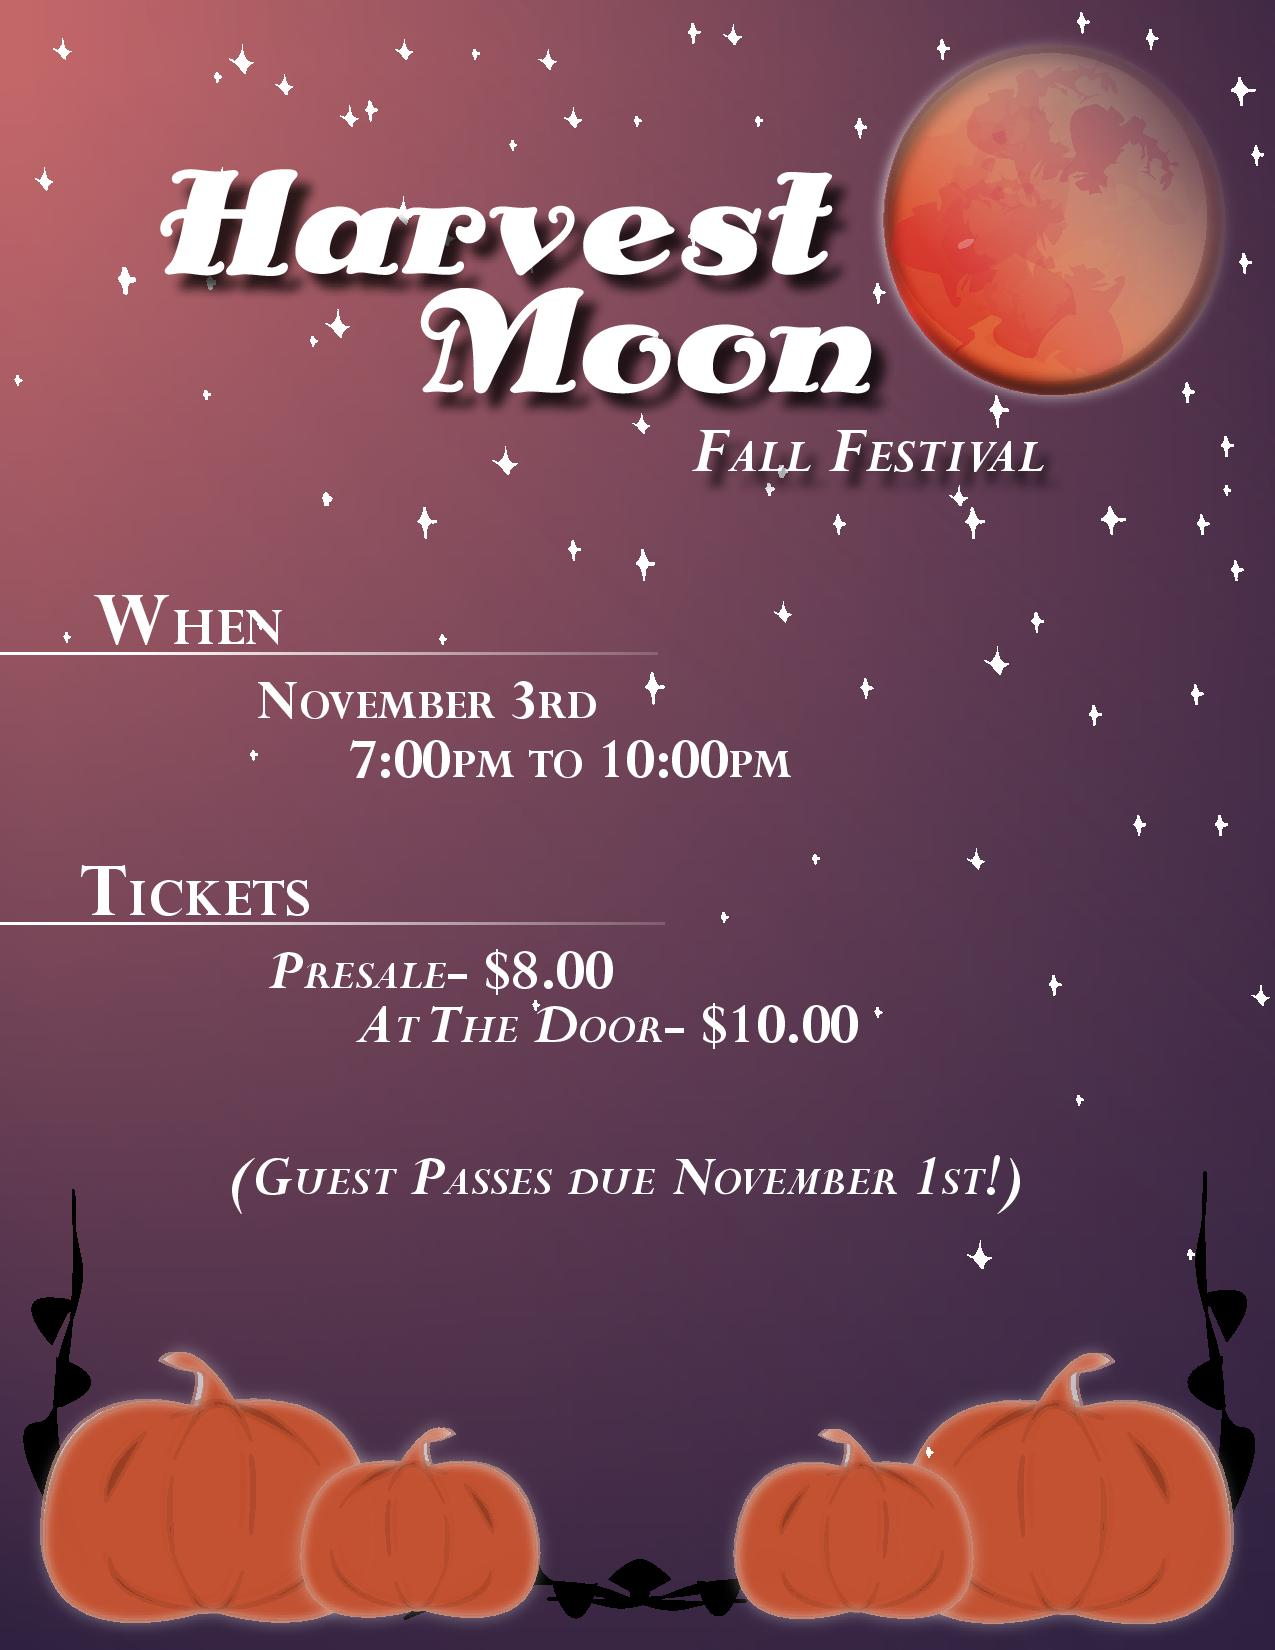 Harvest Moon Fall Festival, November 3, 7:00pm - 10:00pm, Ticket price is $8.00 presale and $10.00 a